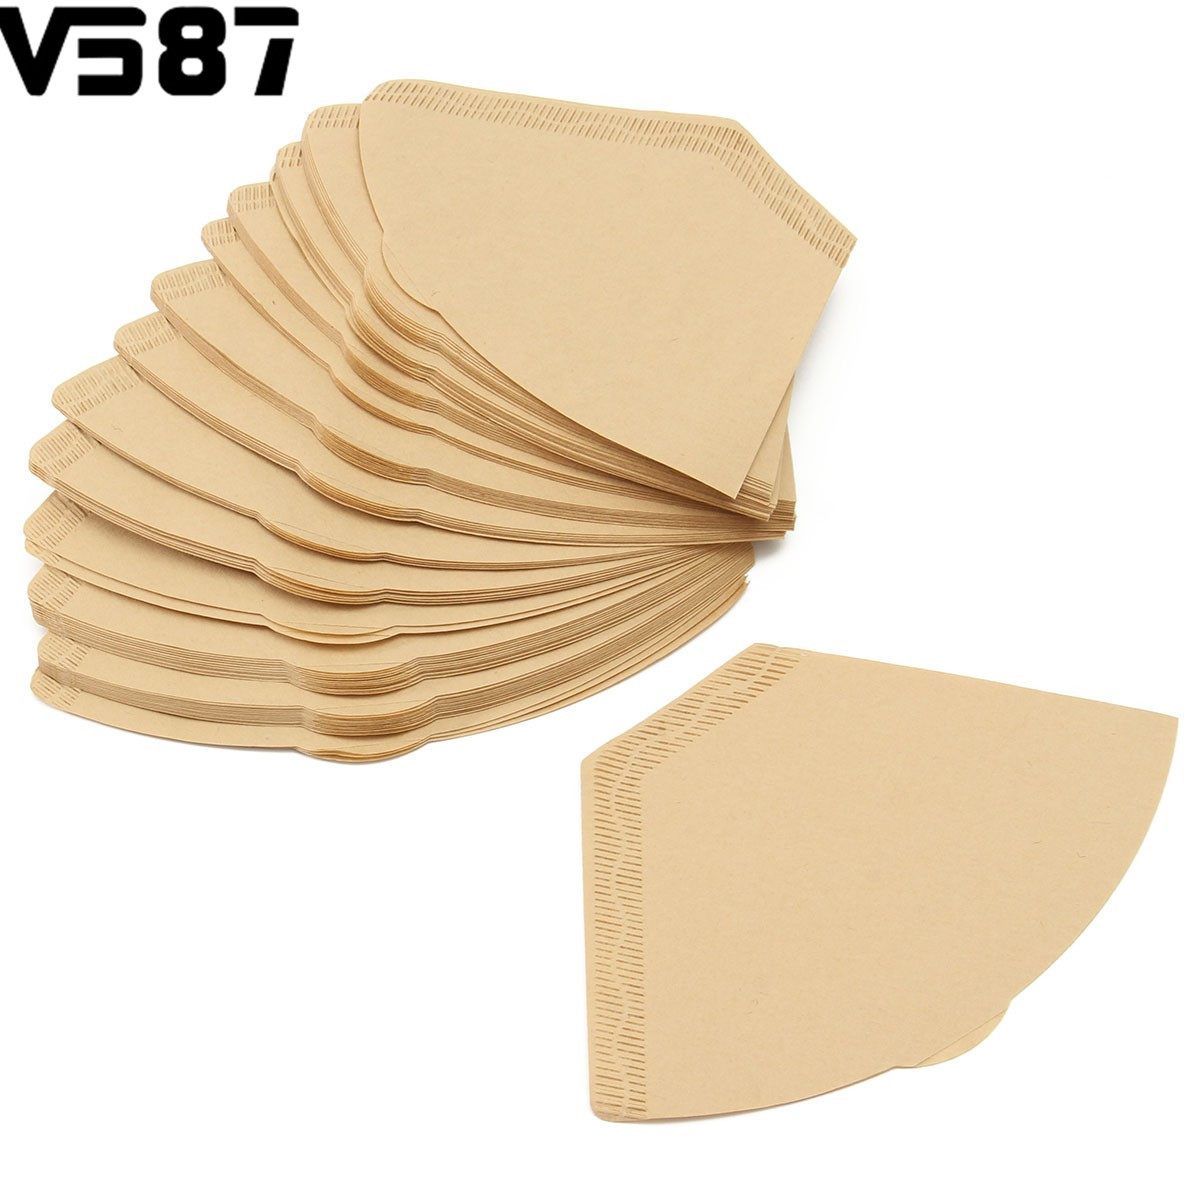 100Pcs Unbleached Coffee Filter Papers Cones Cups Brewer Cappucino Strainer Crafts Practical Home Shop Coffee Tools Accessories(China (Mainland))